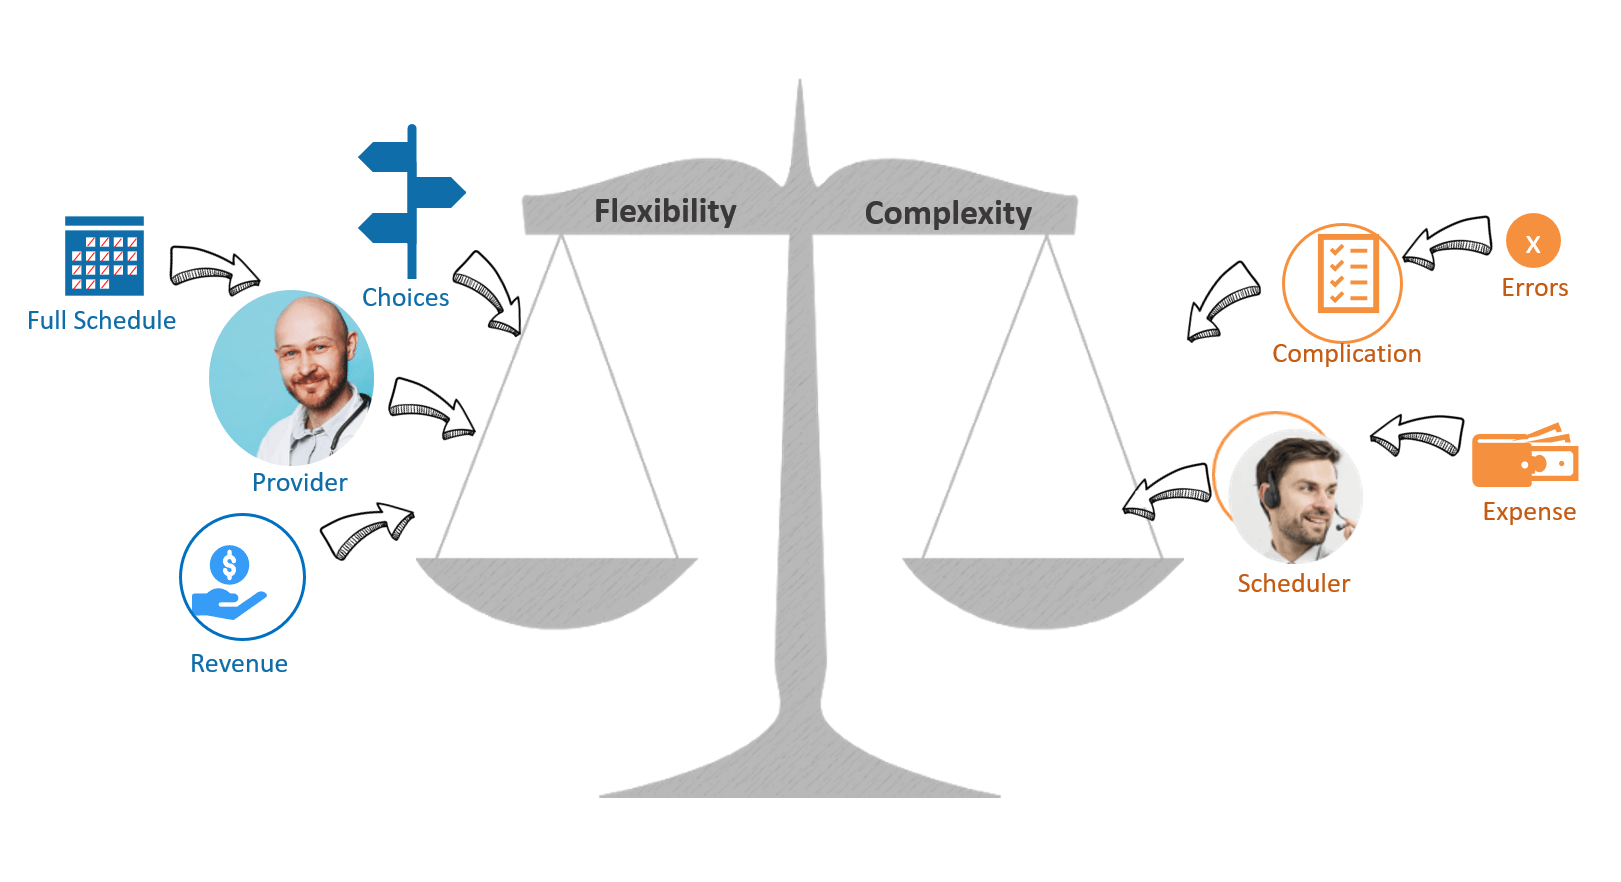 Provider flexibility has trade-offs with scheduling costs and complexity